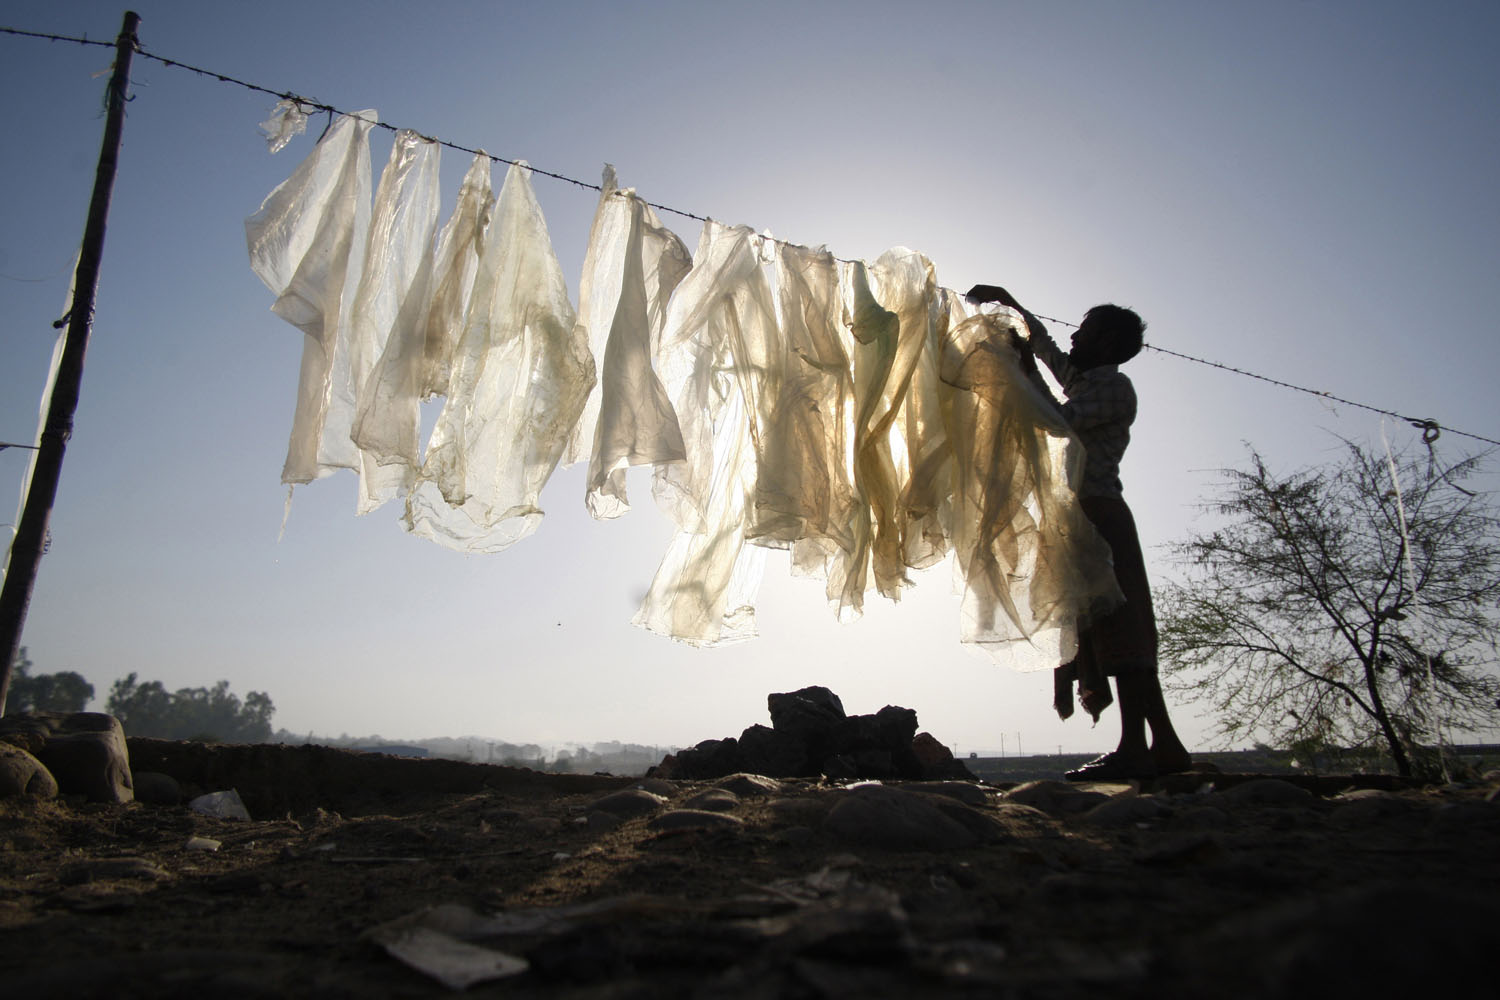 June 5, 2013. An Indian man dries plastic bags for reuse at an industrial area on the outskirts of Jammu, India.